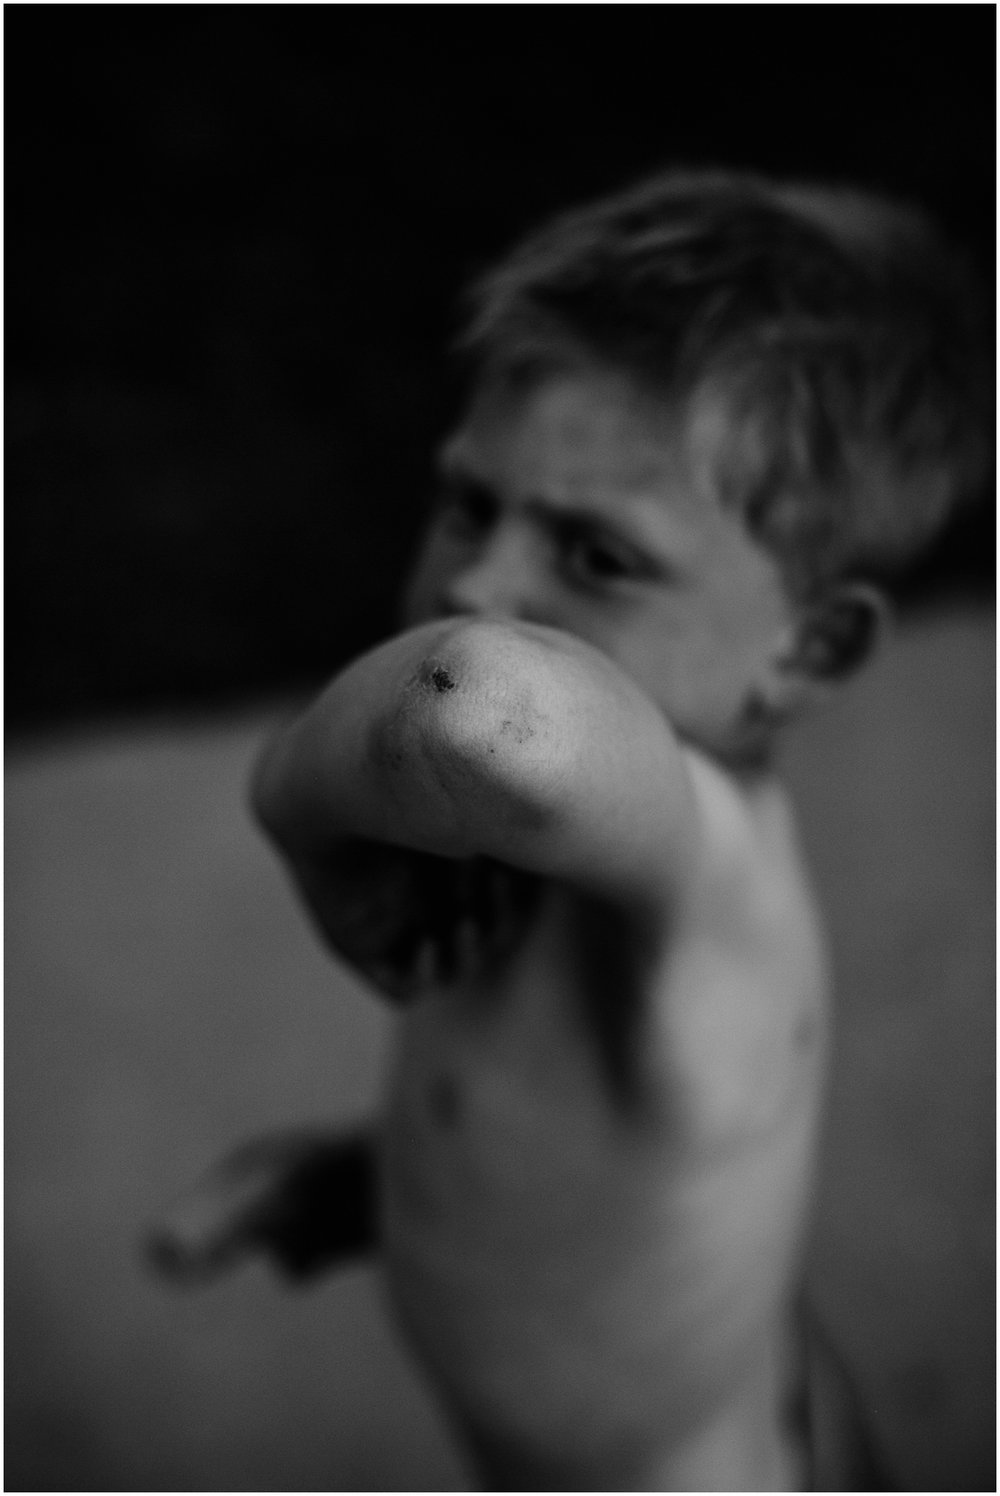 Milwaukee Lifestyle Photographer | Documentary photography of young boy's childhood | Scrapes and scars.